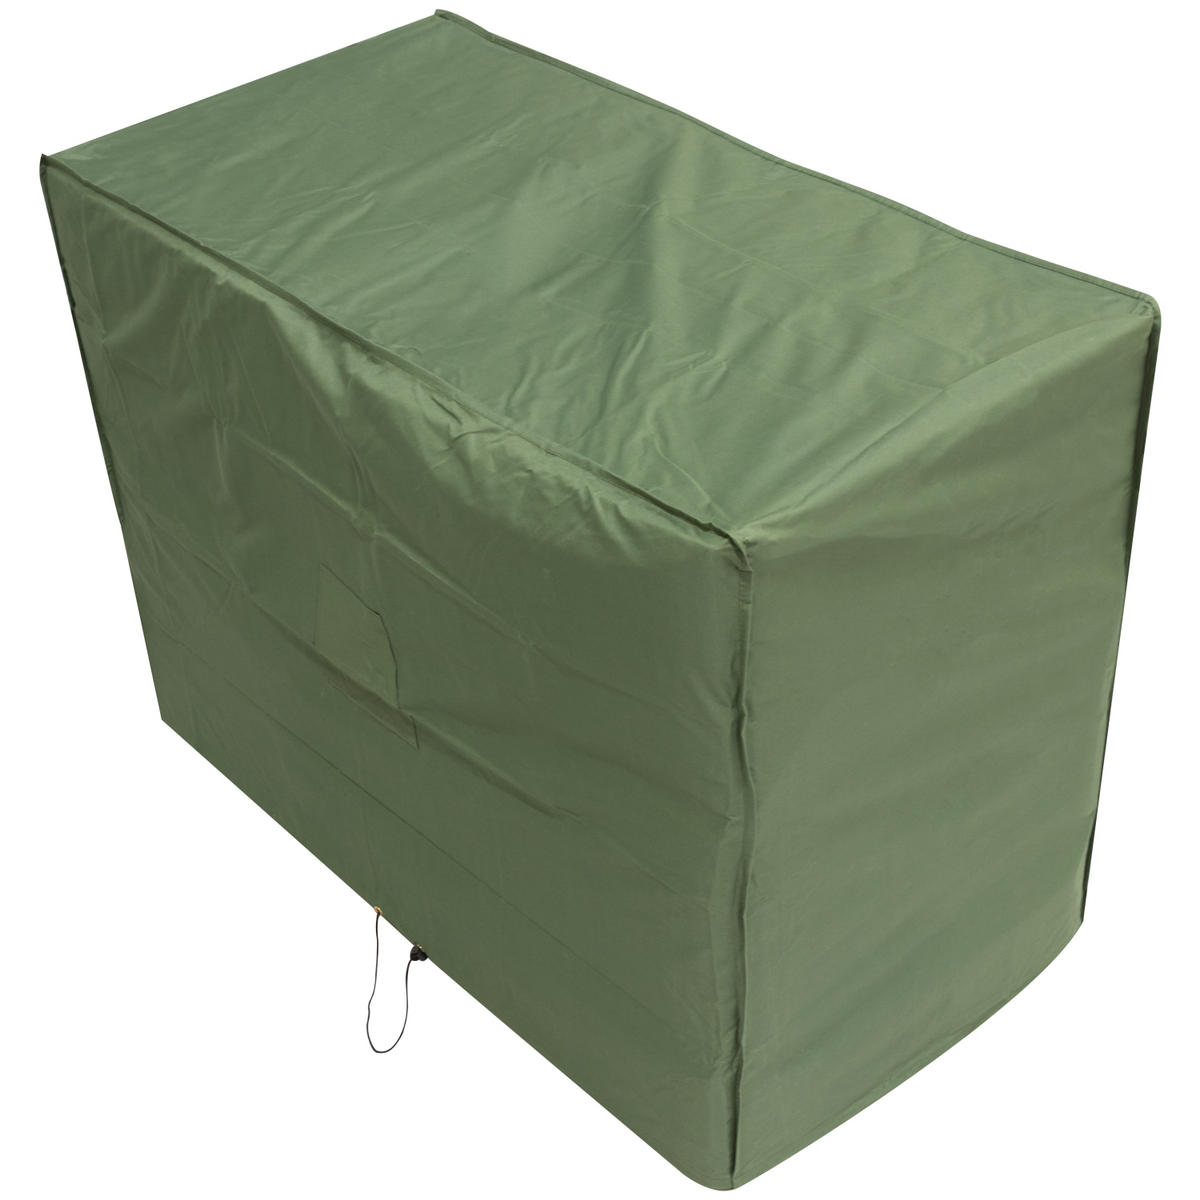 Oxbridge Small (2 Seater) Bench Cover GREEN